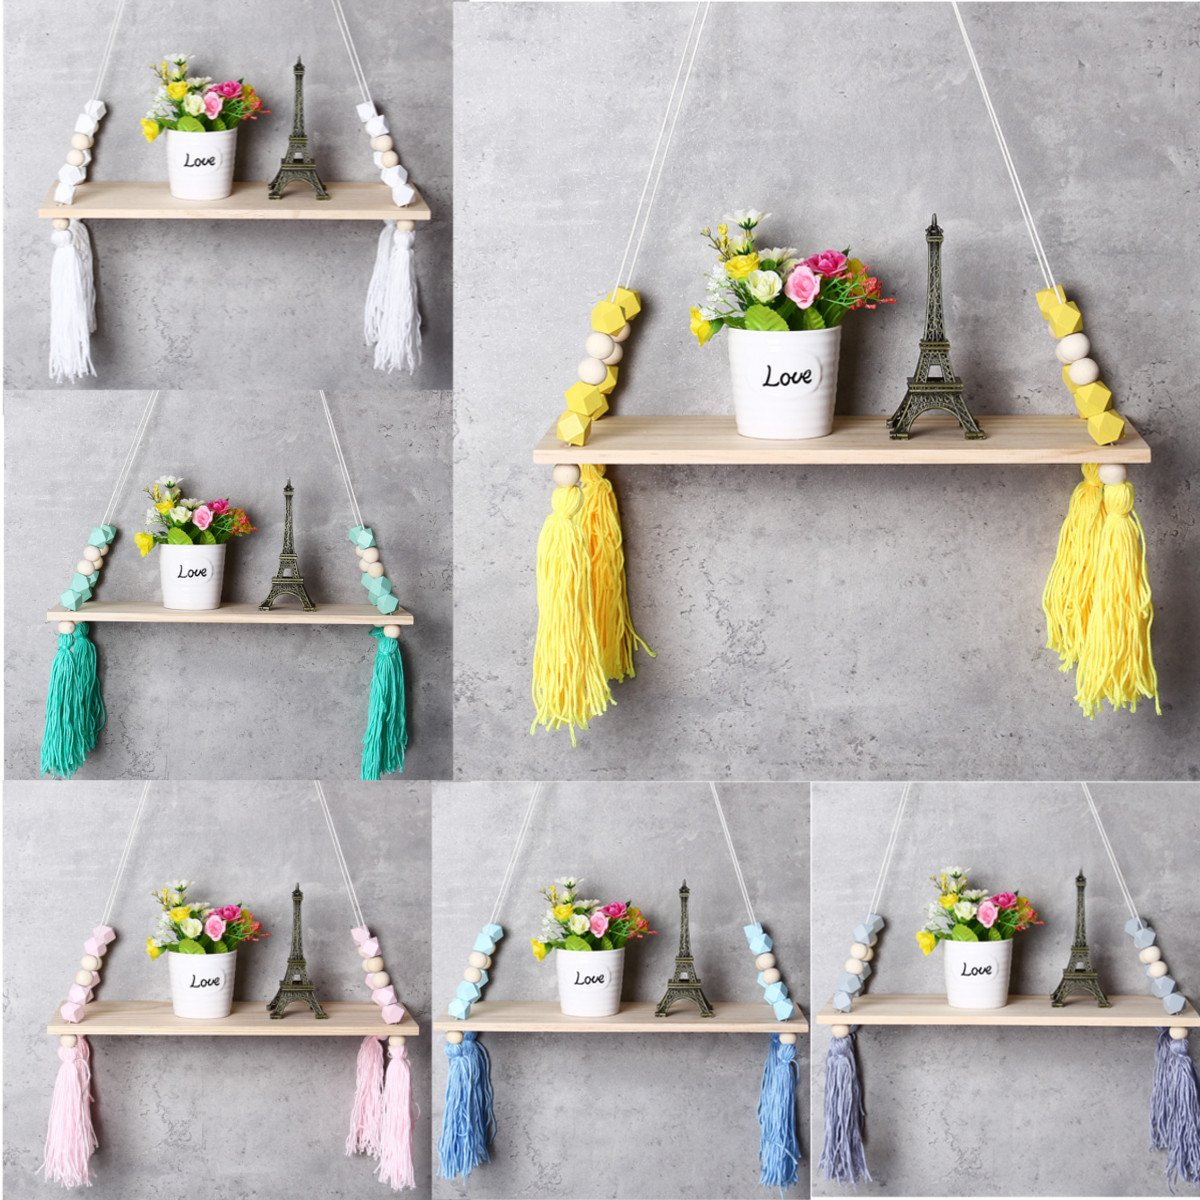 Wall Hangings for Bedroom Best Of Details About Wall Hanging Swing Shelf Shelves Baby Kids Room Storage Holder Wood Rope Decor